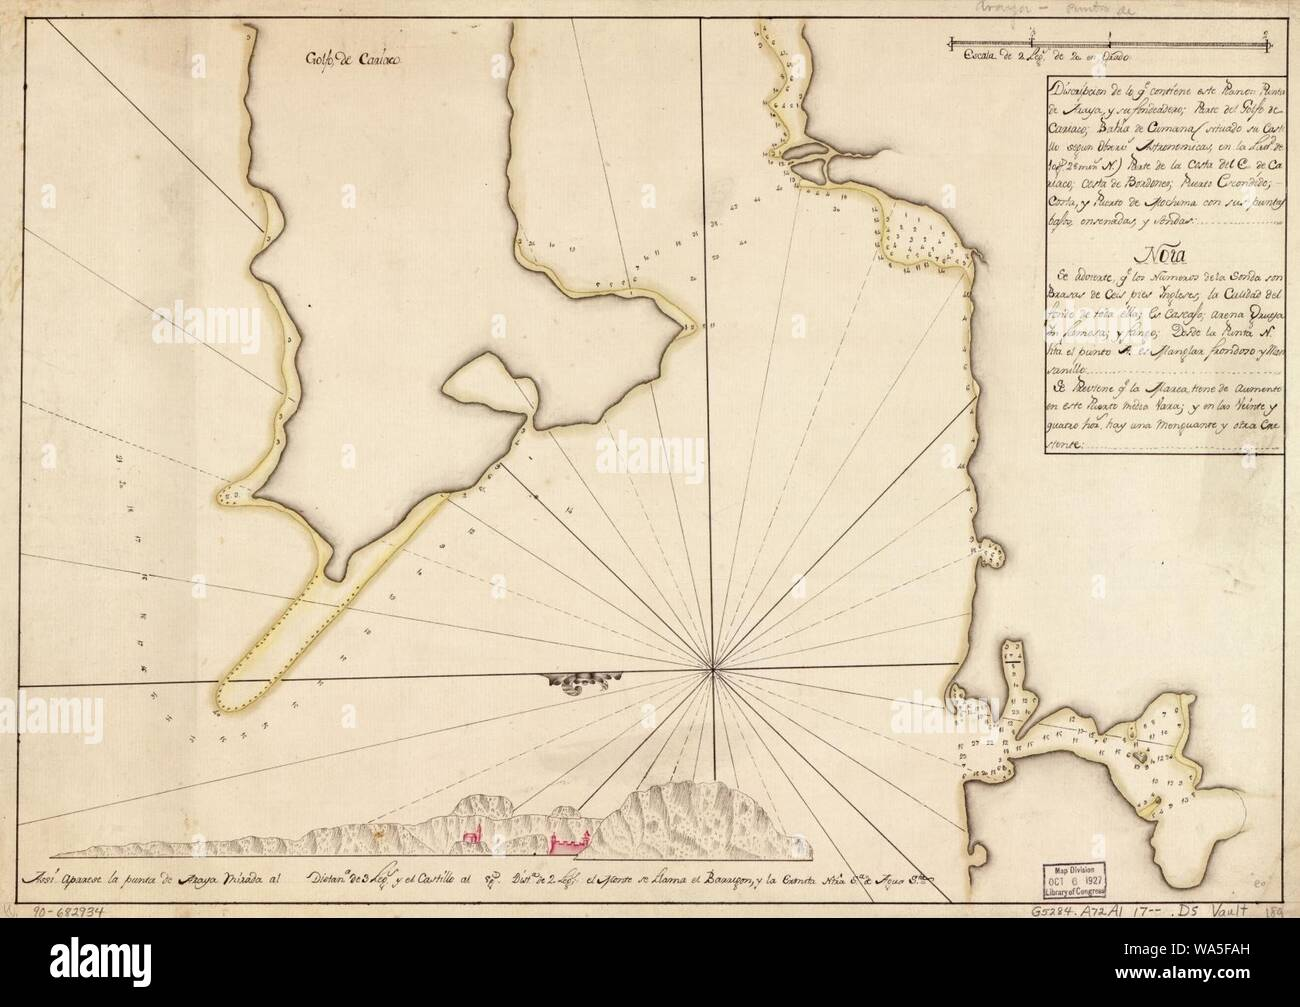 Venezuela 1885 old antique vintage map plan chart Gulf of Cariaco